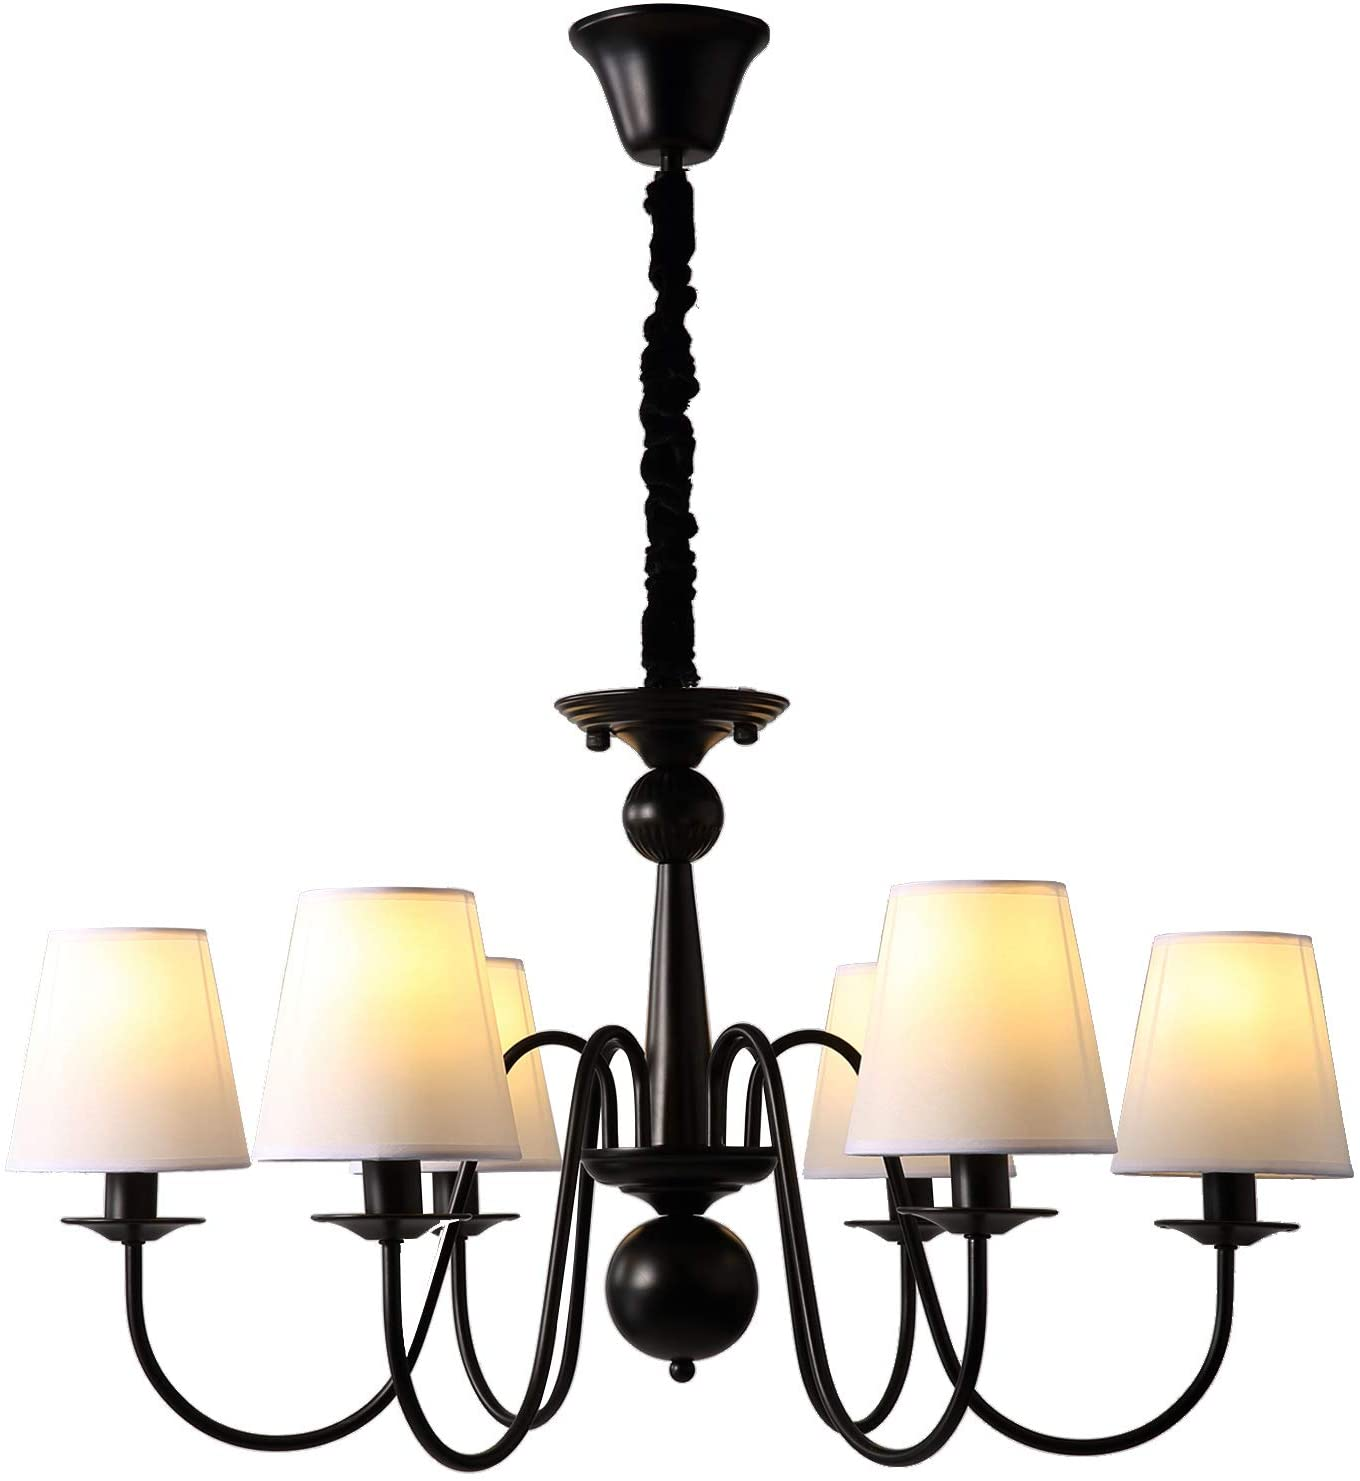 NOXARTE Vintage Chandelier Light Fixture Luxury Black Iron Hanging Ceiling Lamp with White Fabric Lampshade D30